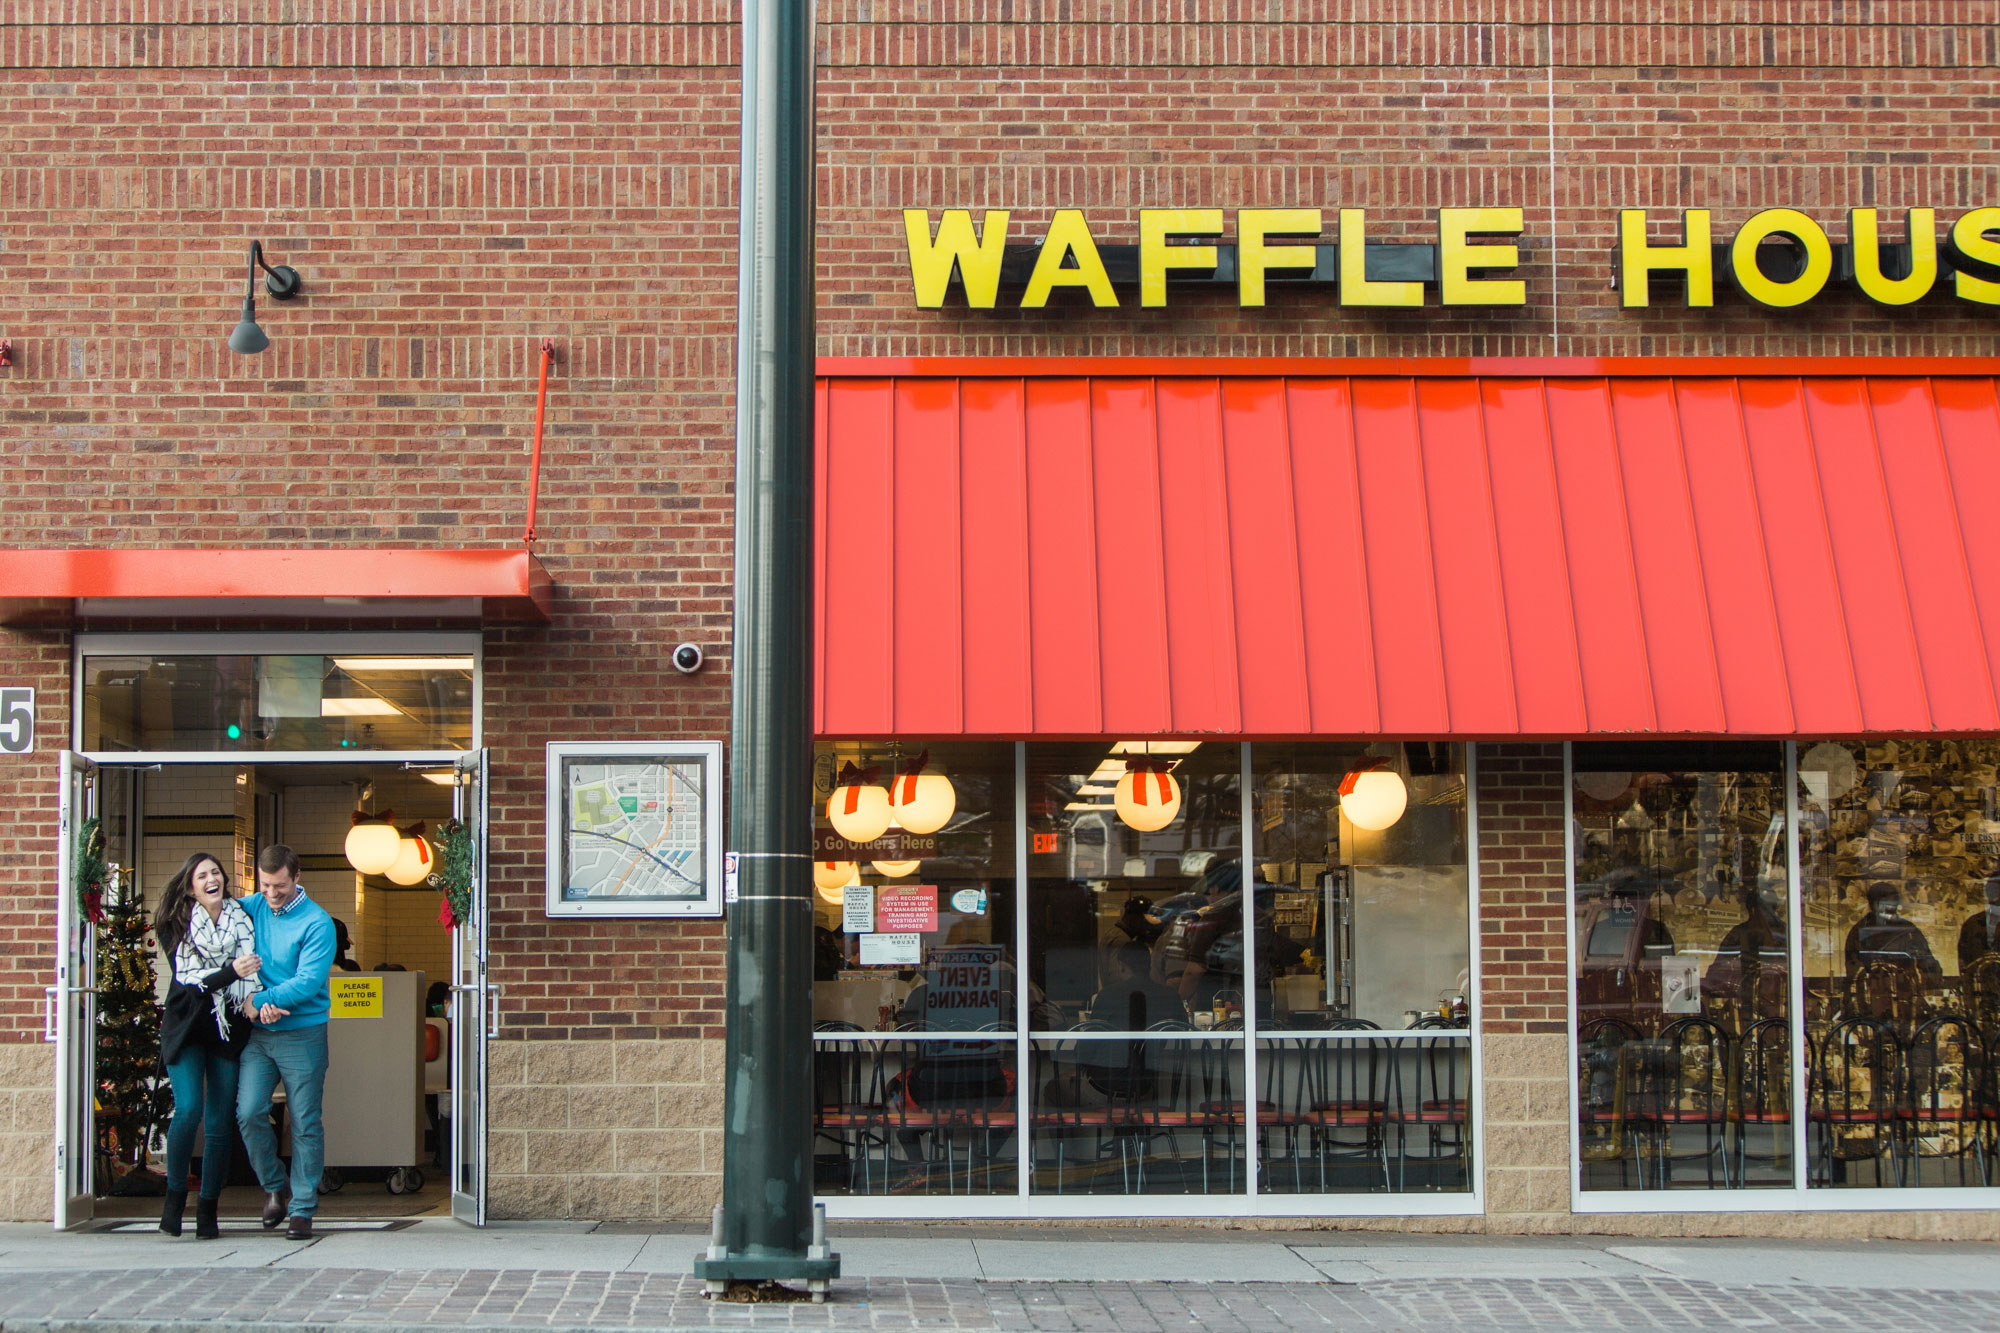 Fun waffle house location in Atlanta for Vue Photography engagement session